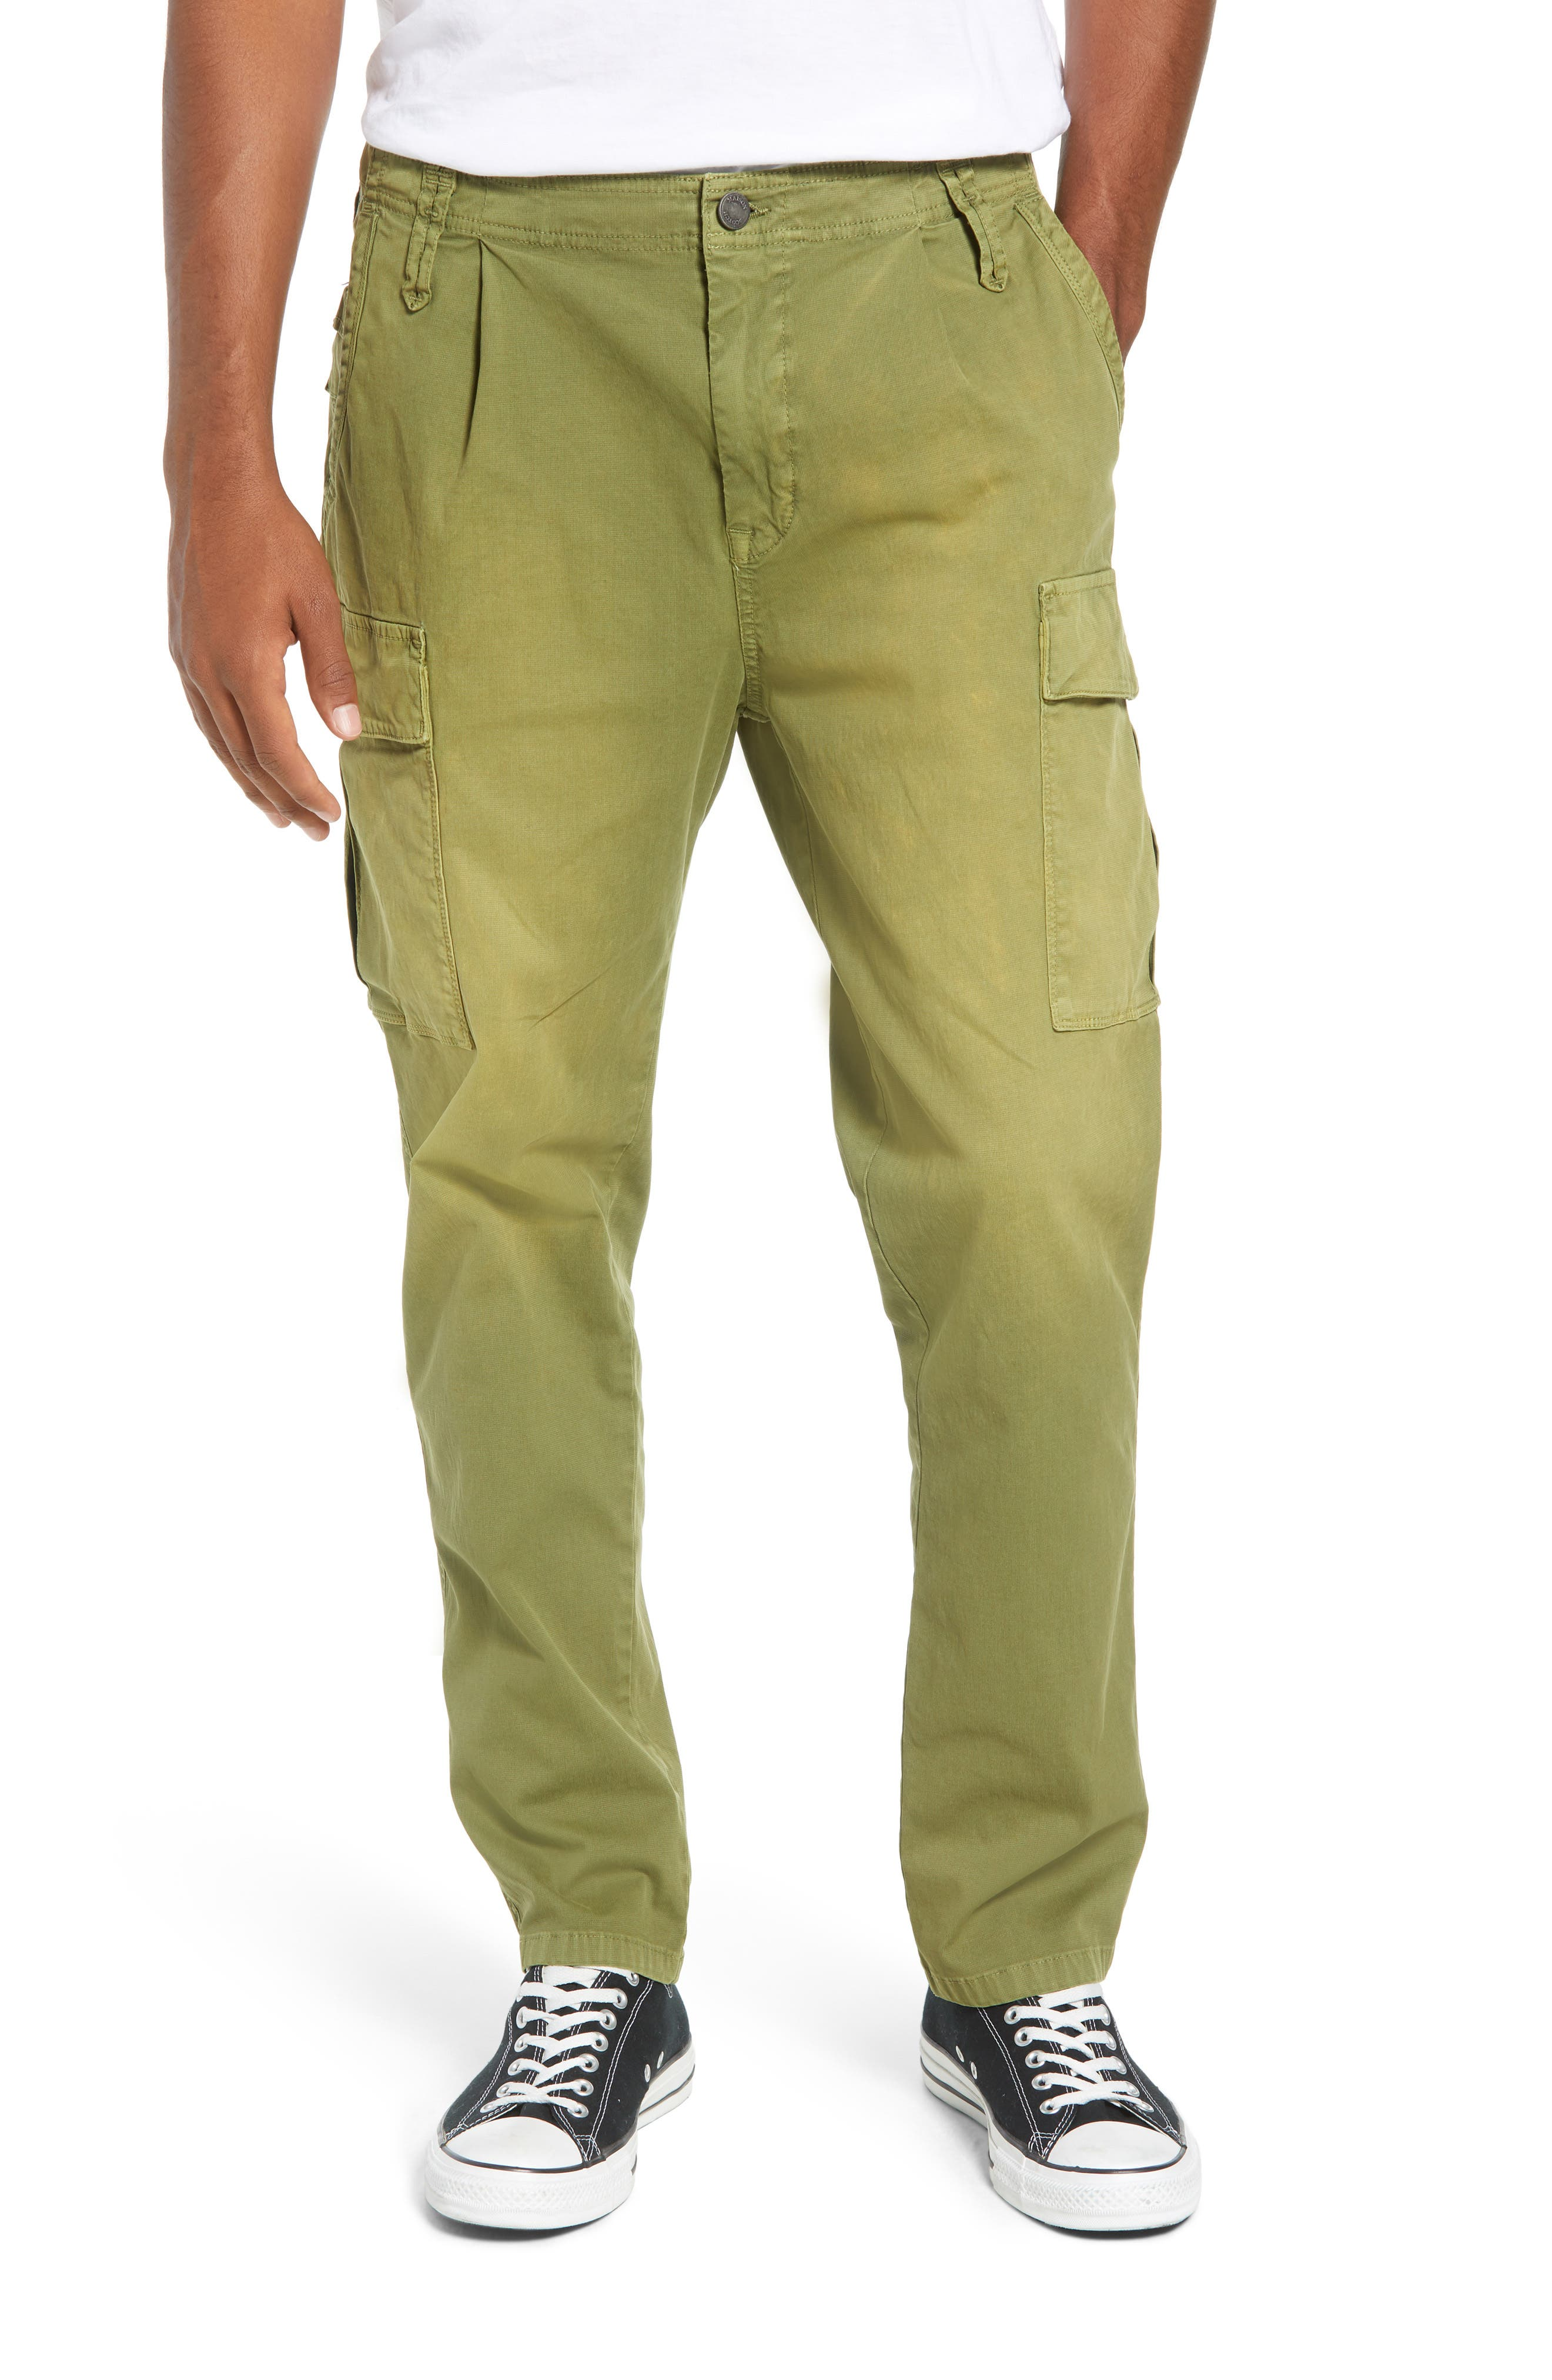 SCOTCH & SODA Loose Taper Fit Washed Cargo Pants, Main, color, MILITARY